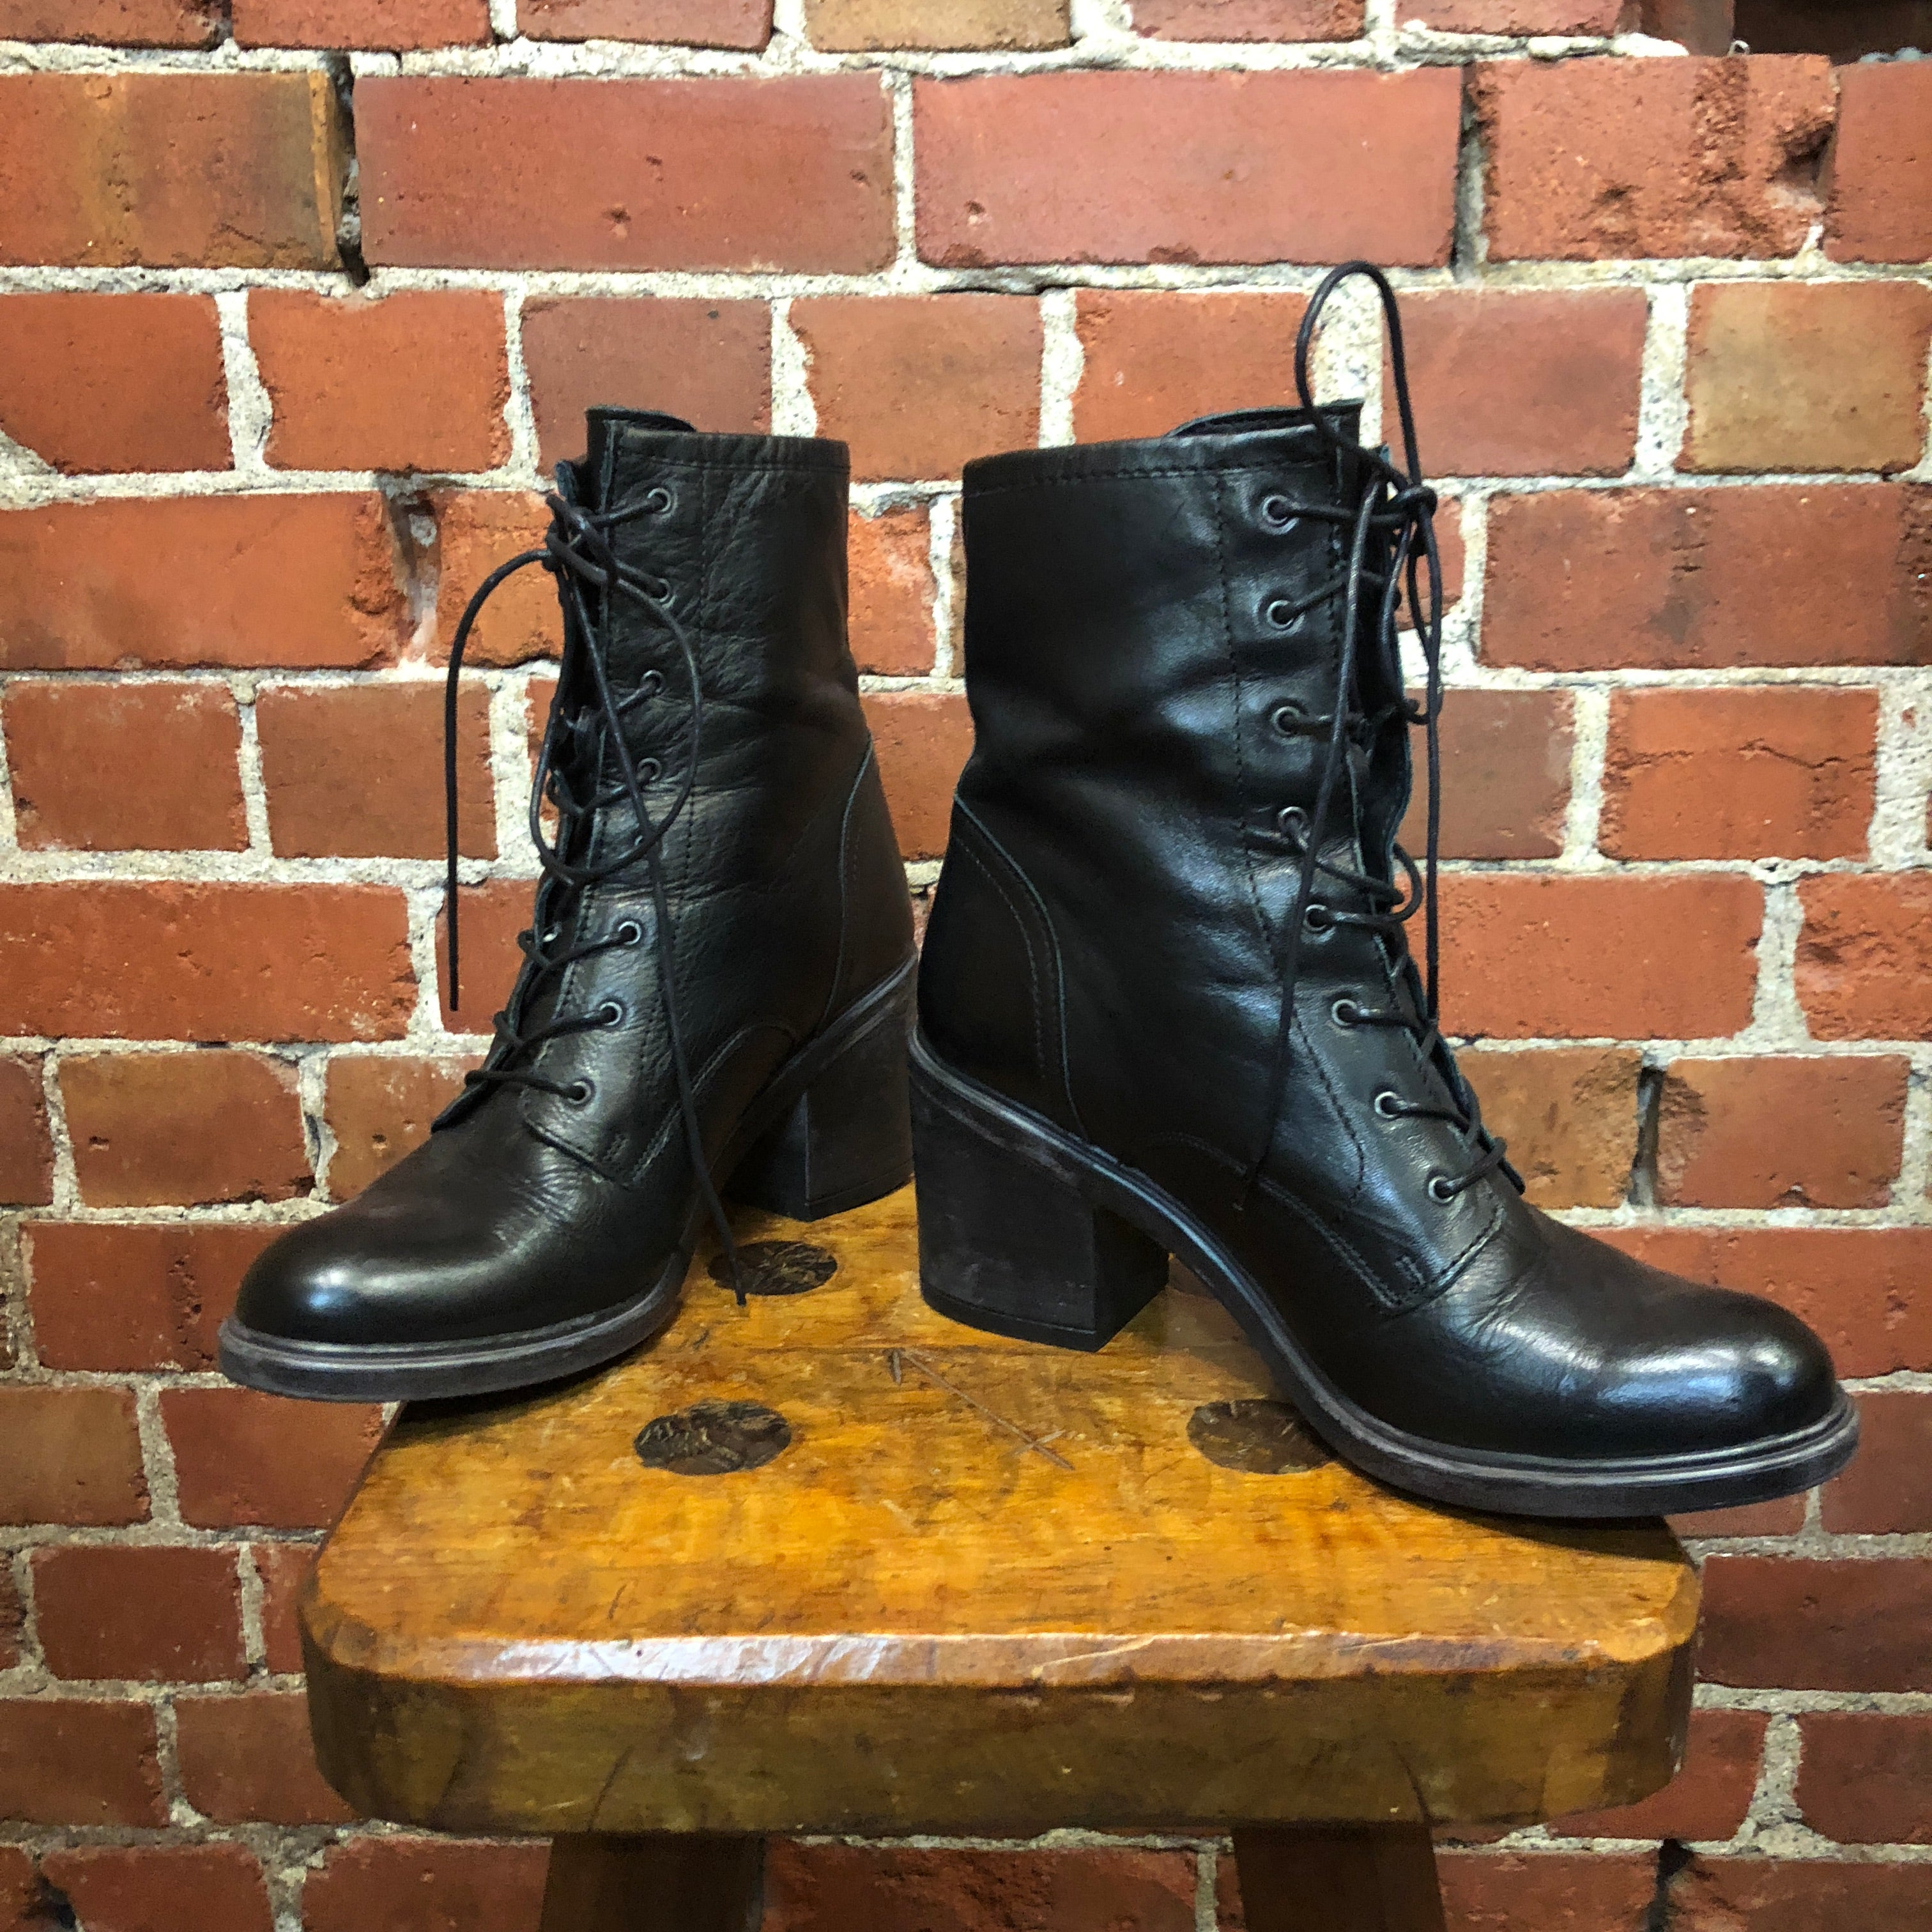 BULLDOG lace up leather boots 39